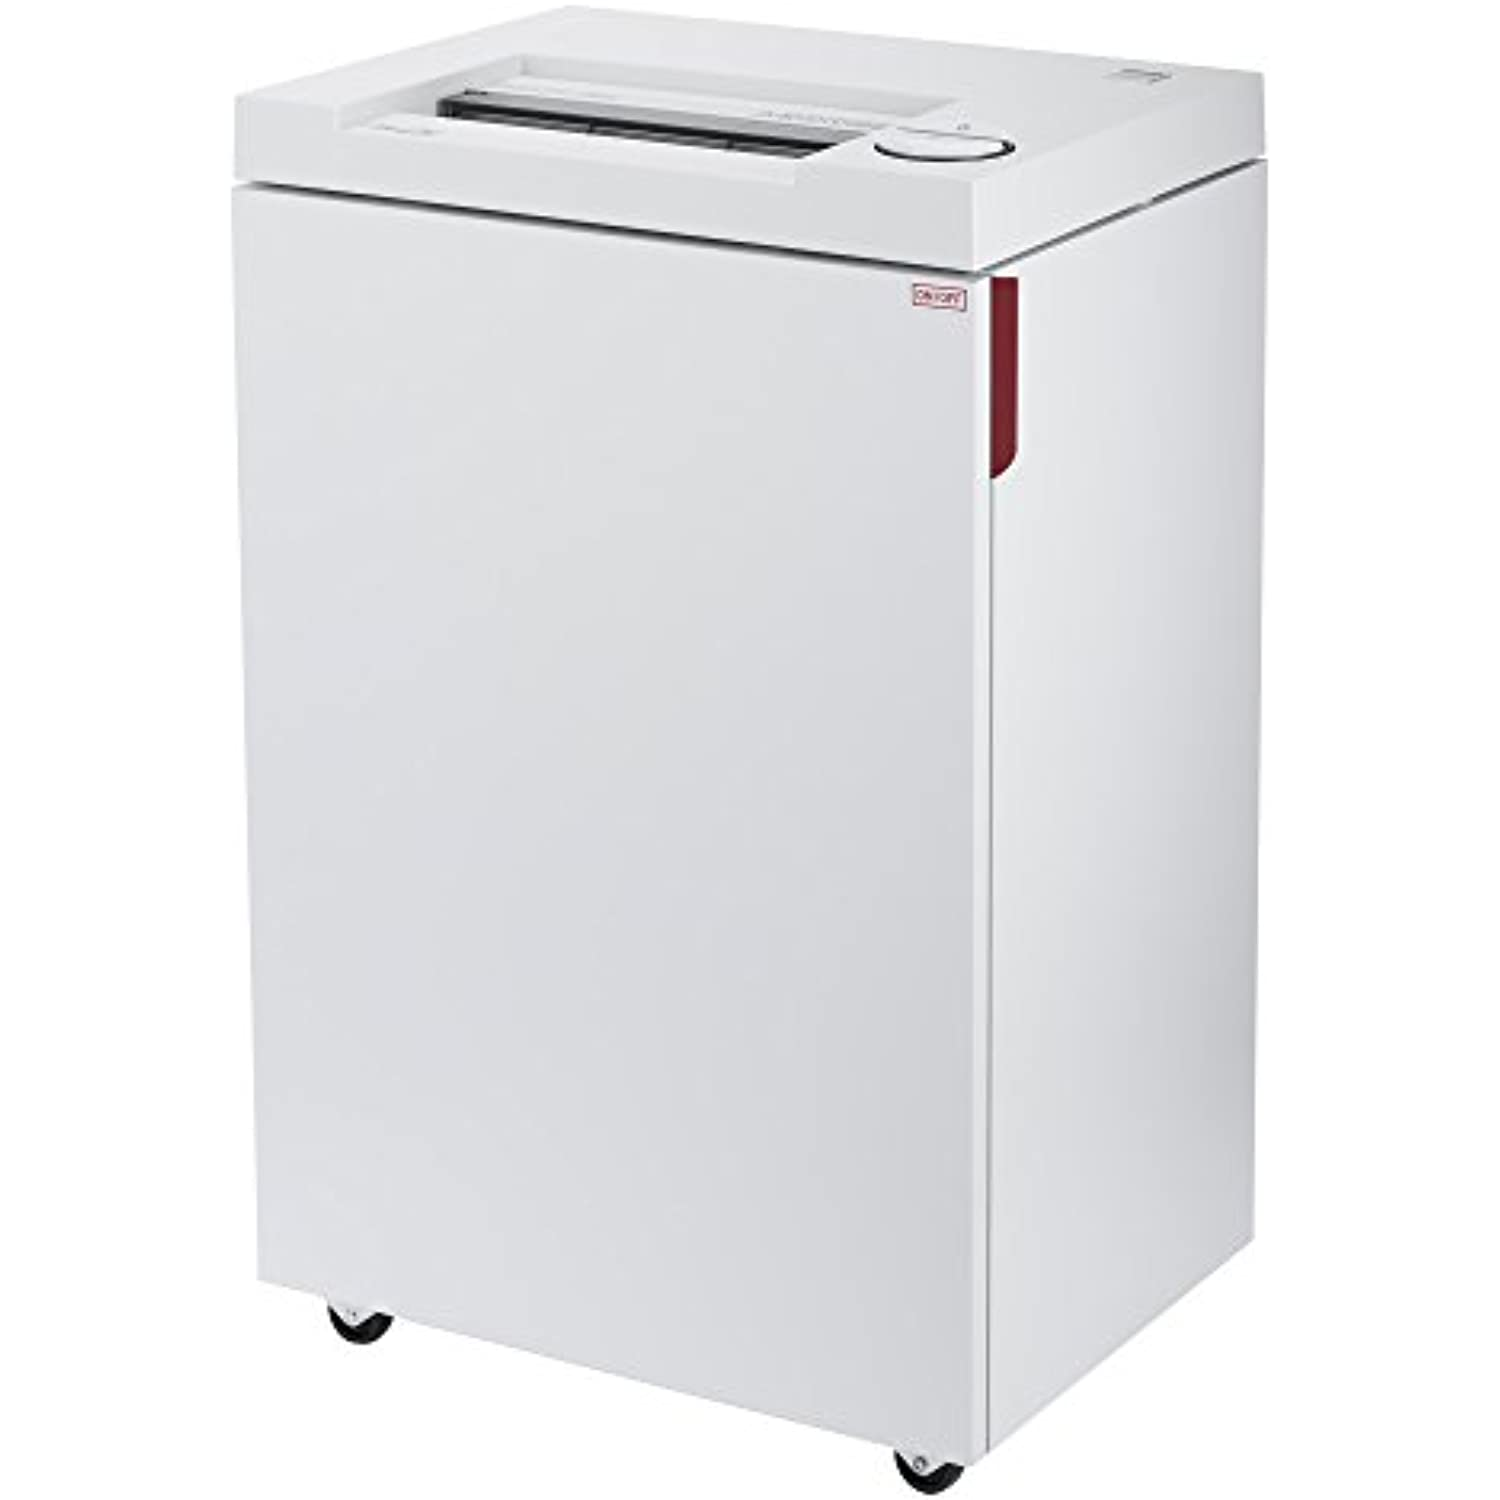 ideal. 2465 Cross-Cut Deskside Paper Shredder, Continuous Operation, 9-11 Sheet, 9 Gal. Bin, Shred Staples/Paper Clips/Credit Cards, 3/4 HP Motor, P-5 Security Level